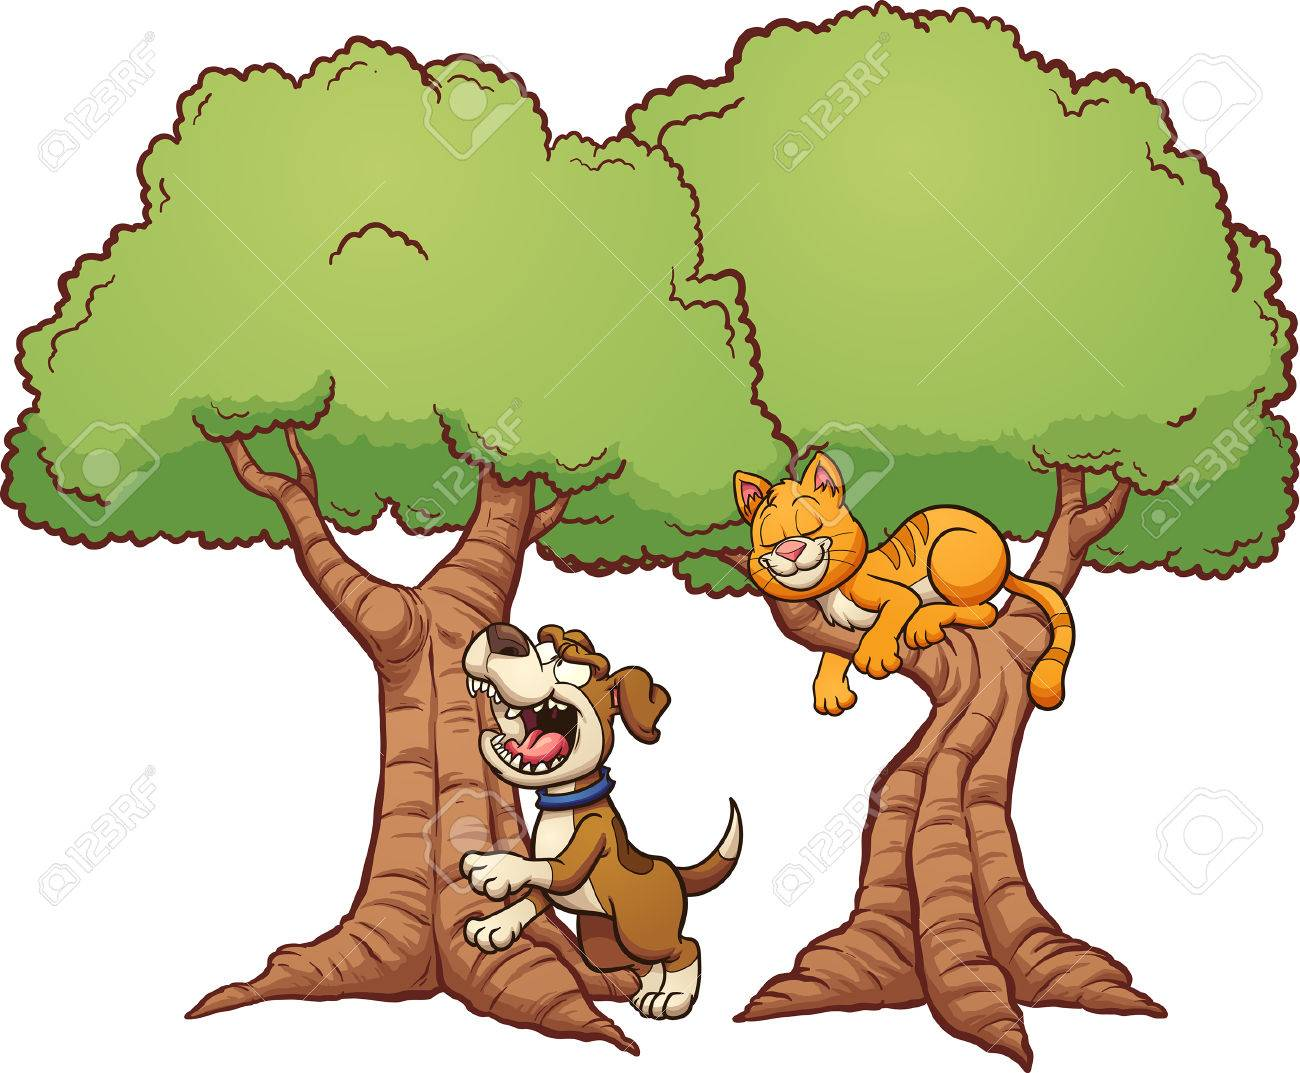 Dog Barking Up The Wrong Tree Clip Art Illustration With Simple Royalty Free Cliparts Vectors And Stock Illustration Image 72320426